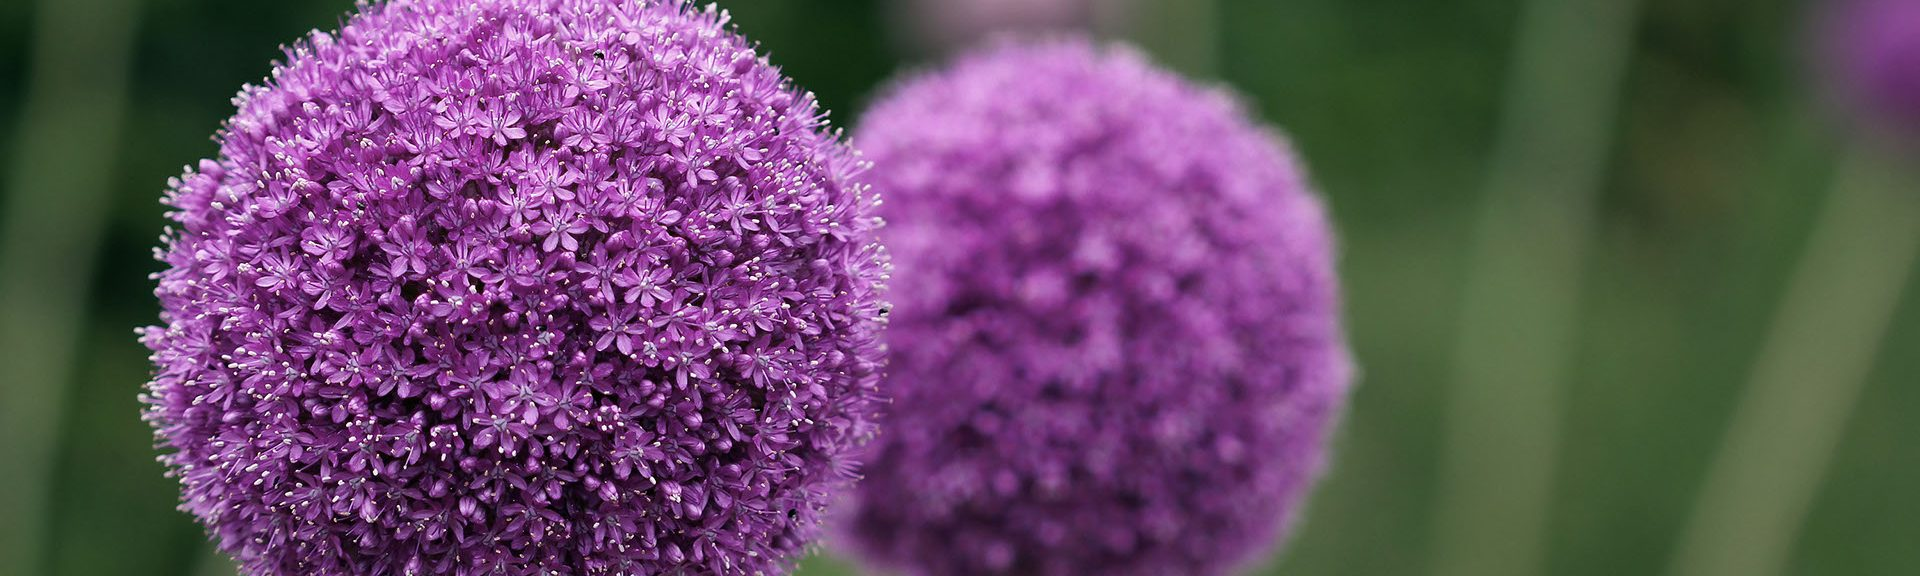 Couple of the allium purple flowers growing in the garden